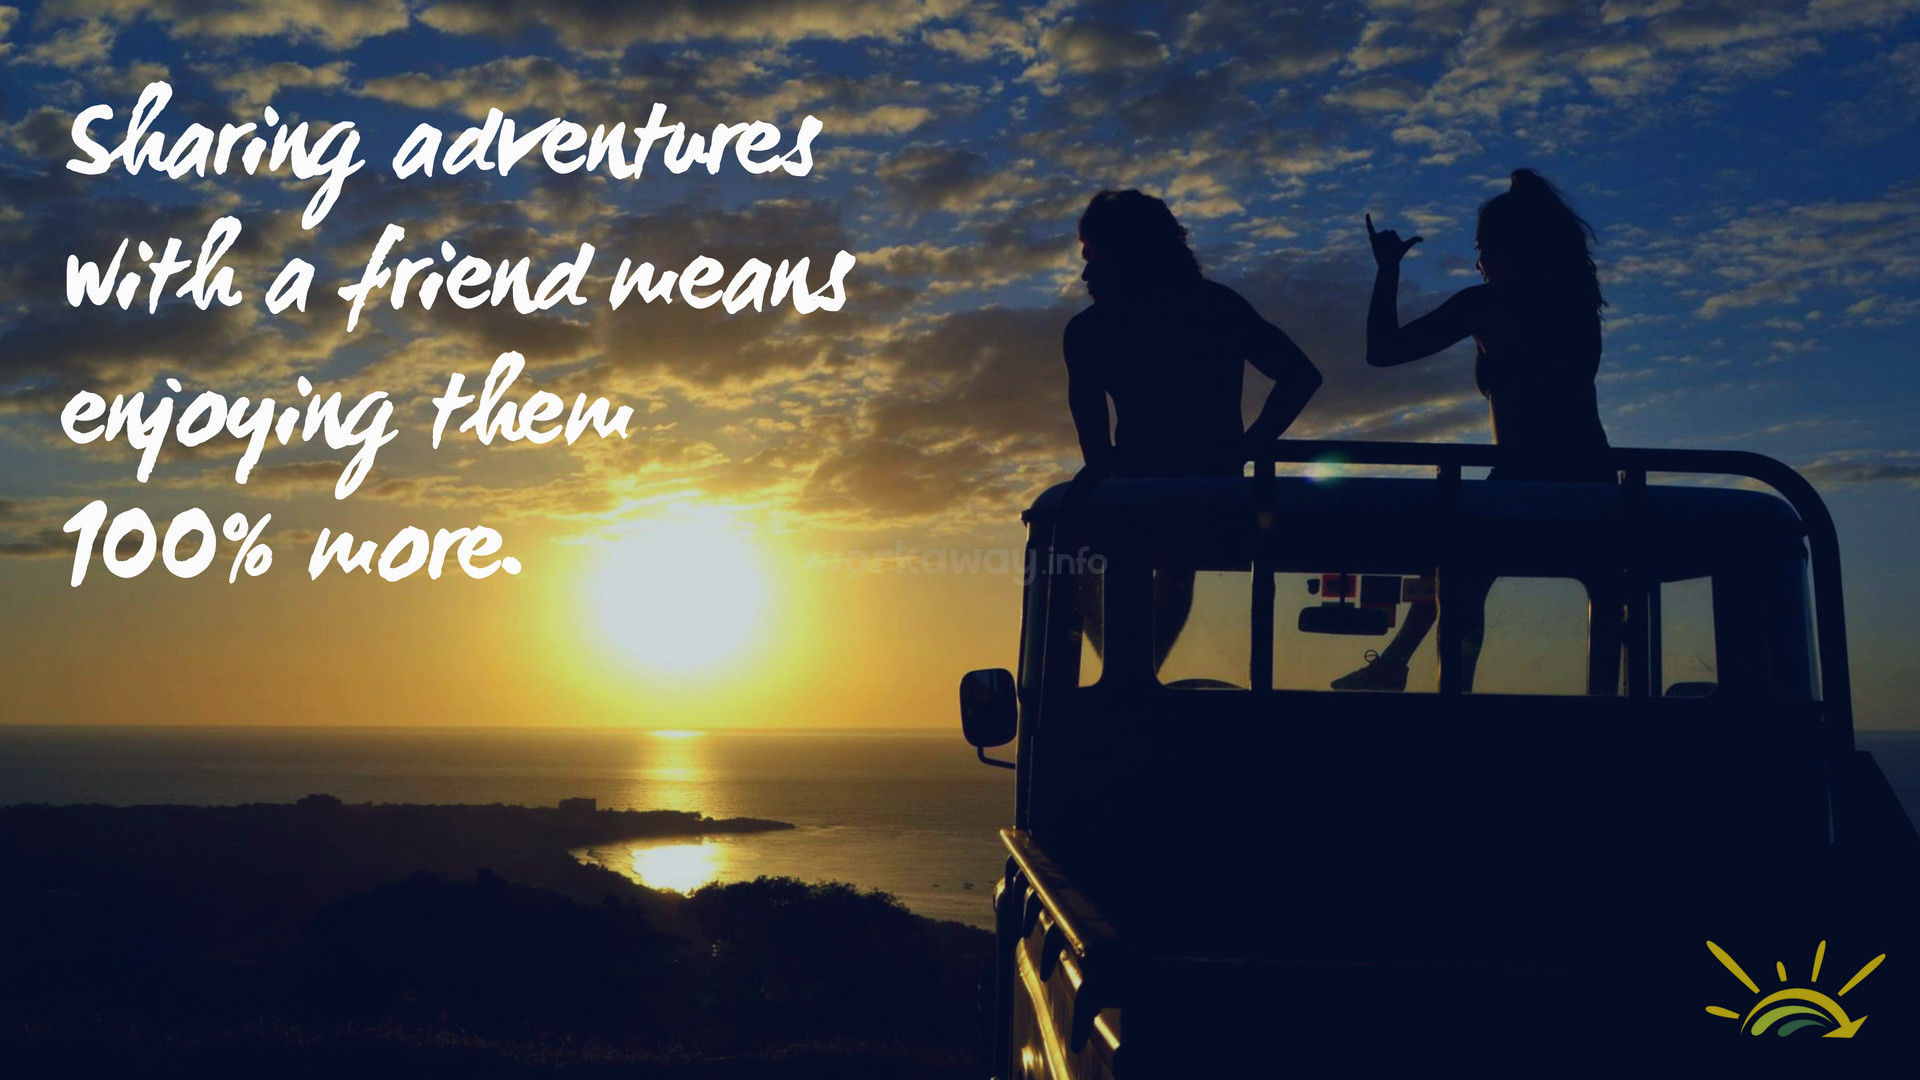 sunset text quote inspiration friends adventure car road trip